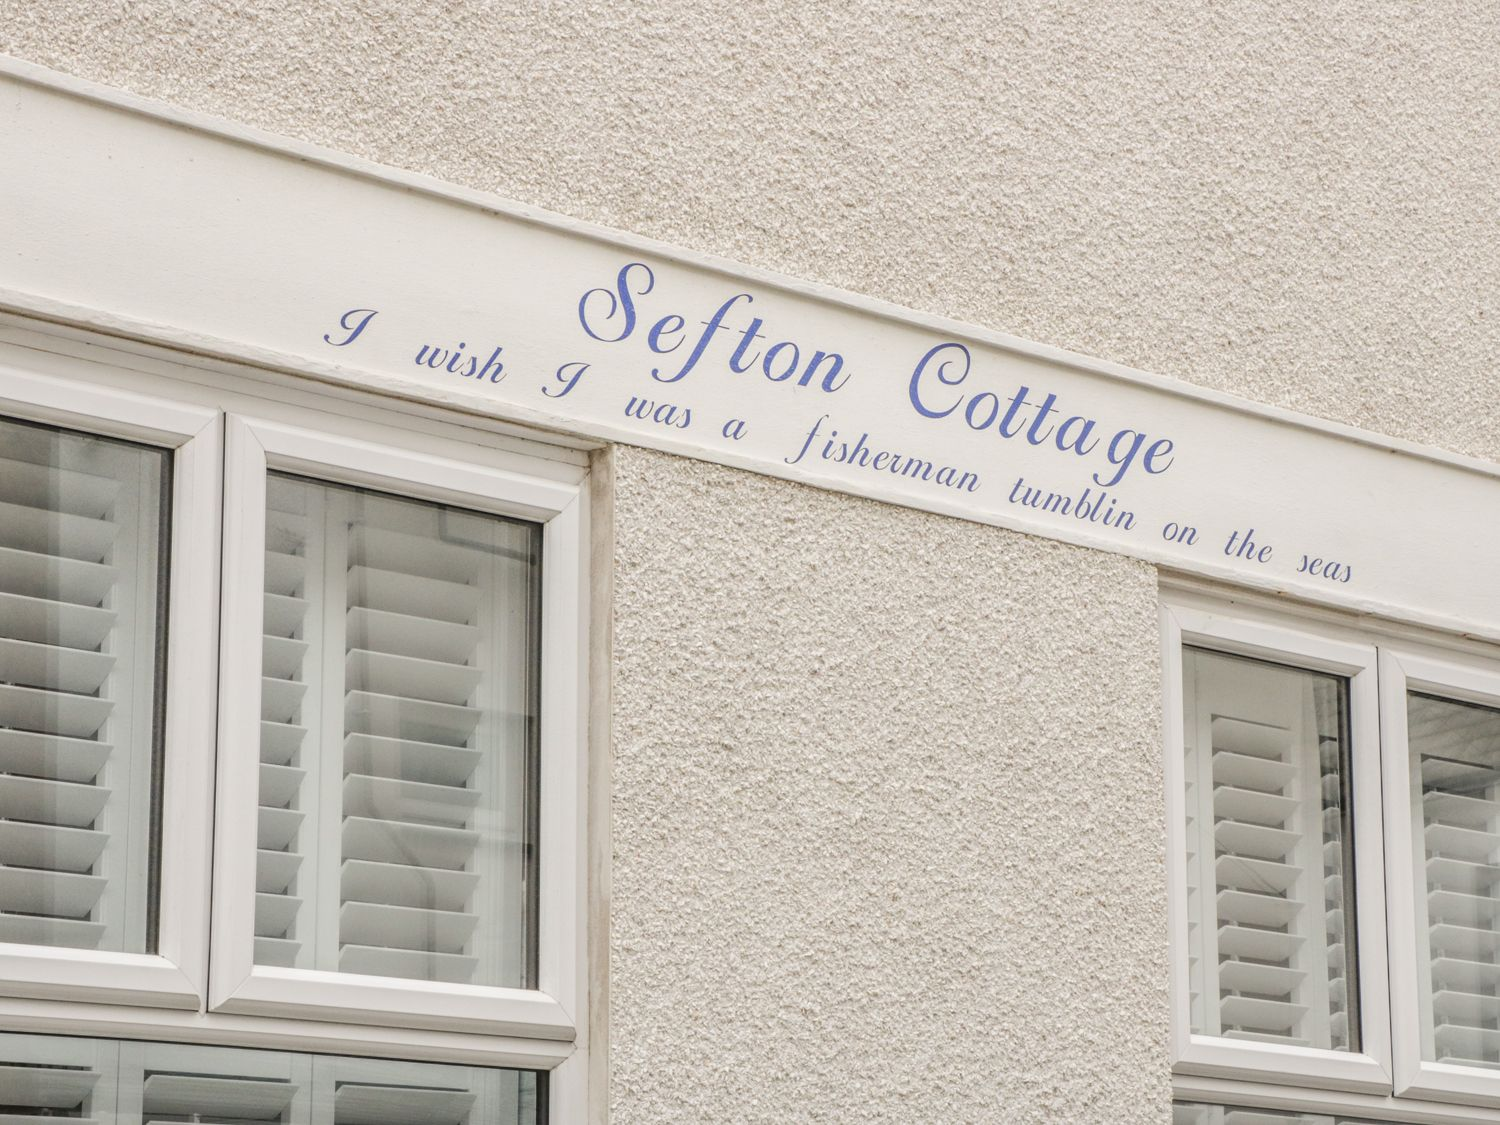 Sefton Cottage - North Wales - 987050 - photo 1